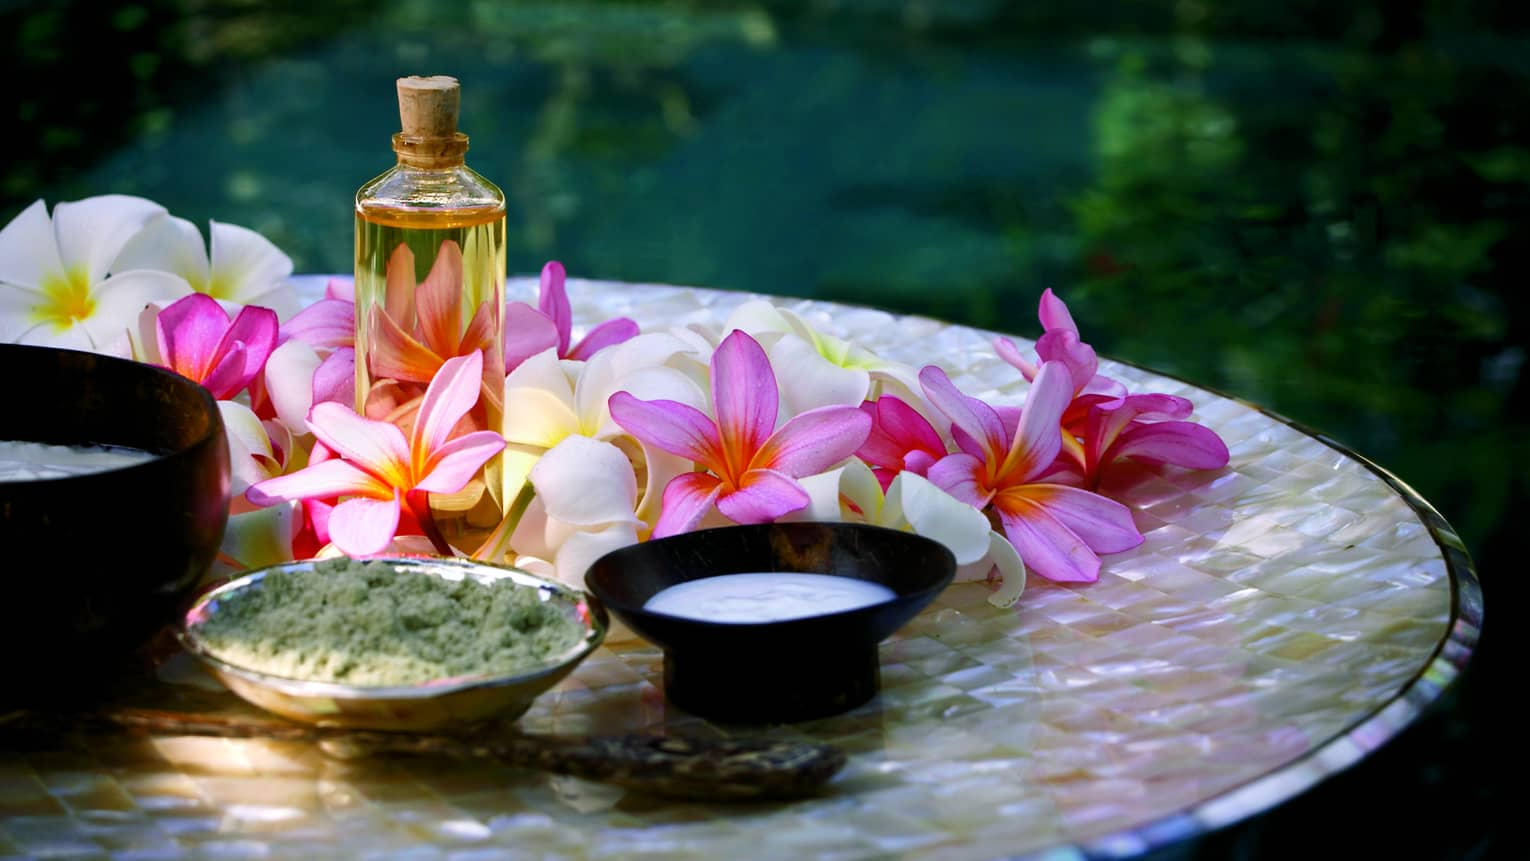 Spa tray with fresh pink and white flowers, glass bottle with oil and cork, small bowls of salt and lotion